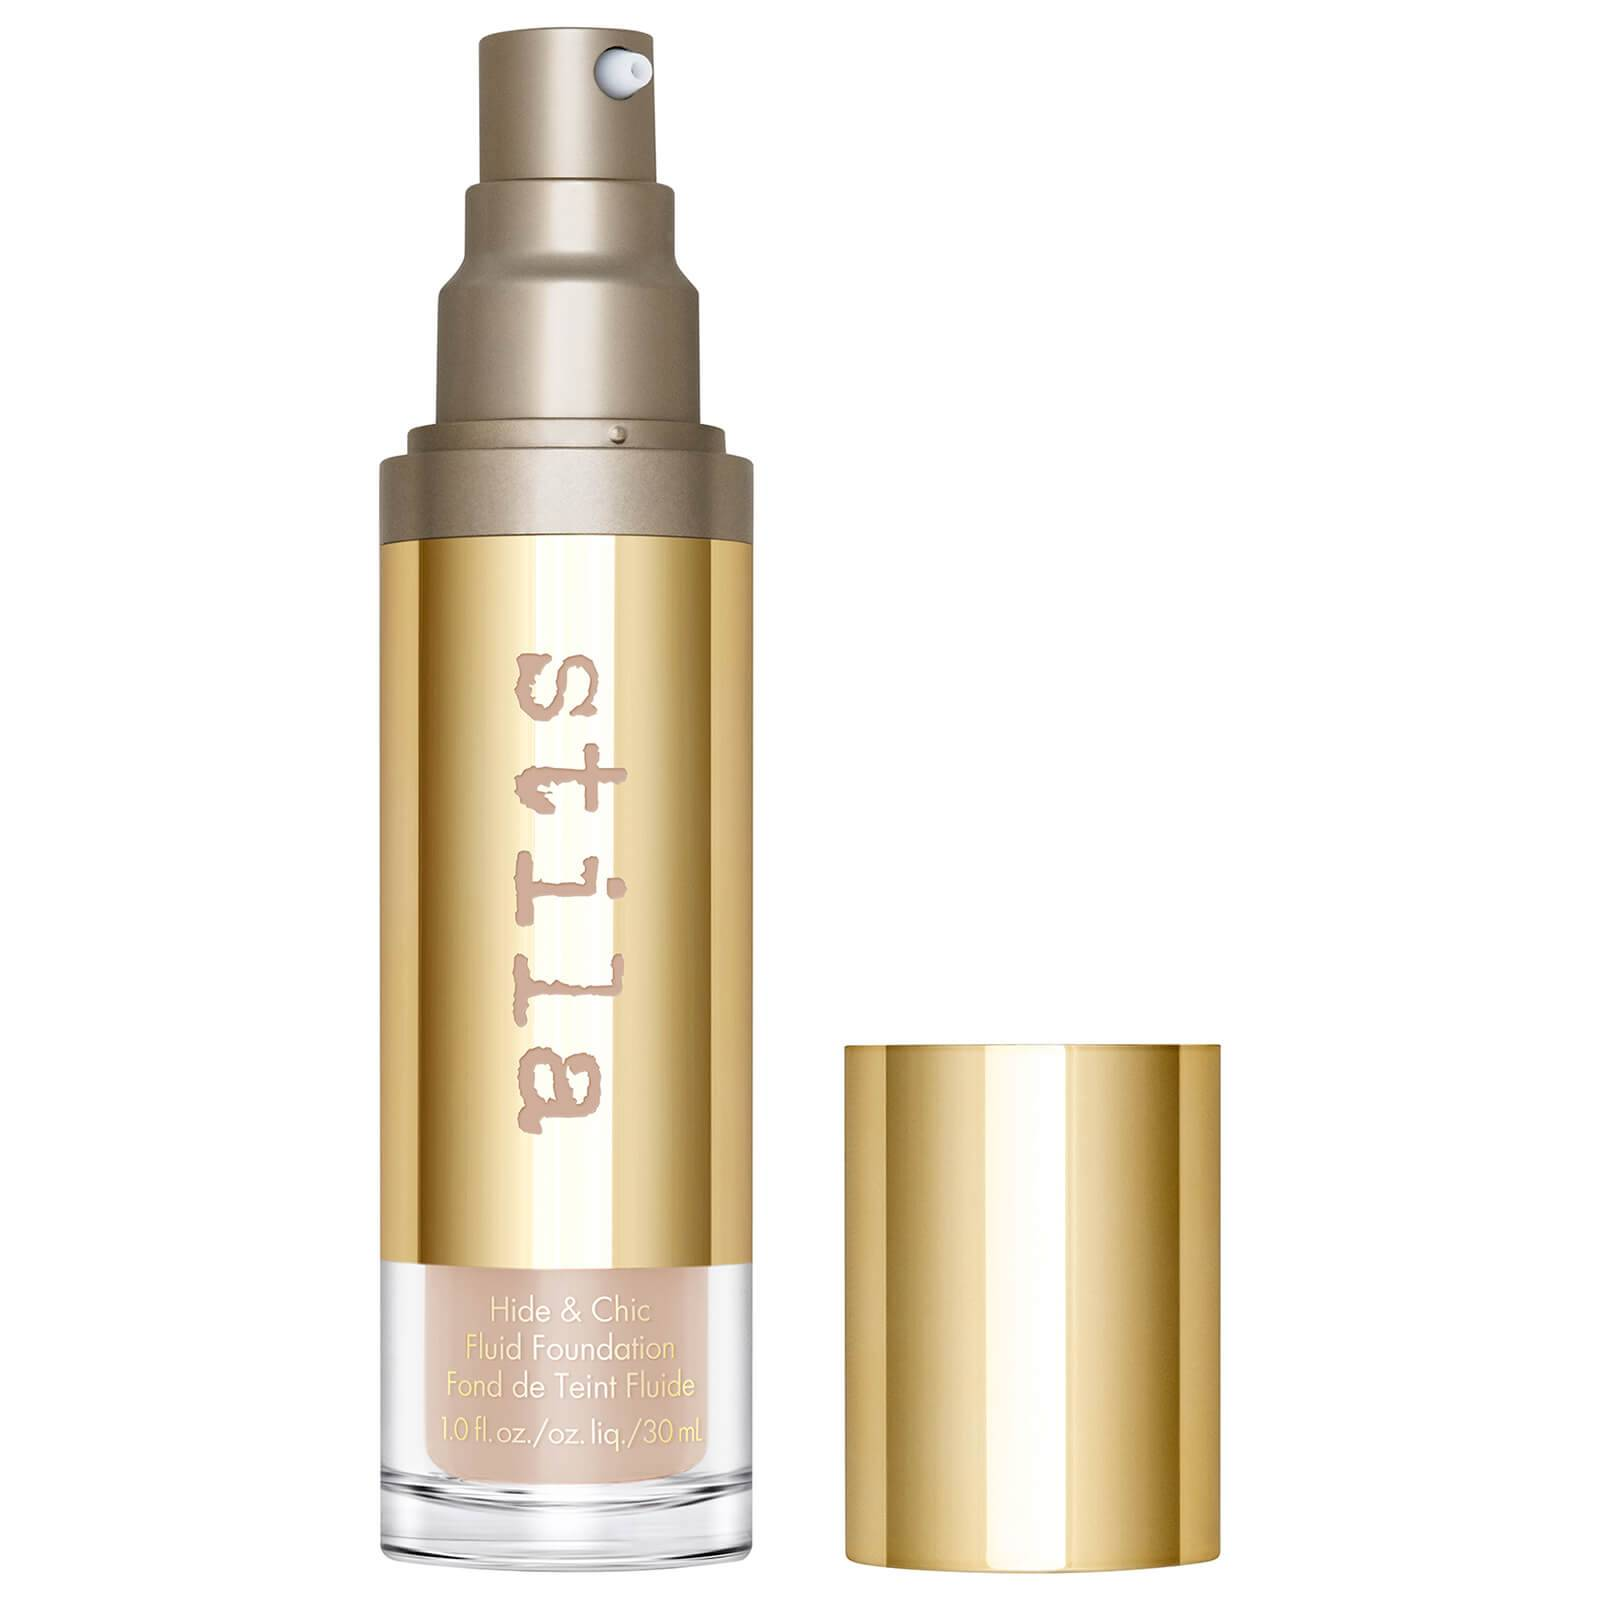 Stila Hide and Chic Fluid Foundation 30ml (Various Shades) - Light/Medium 3